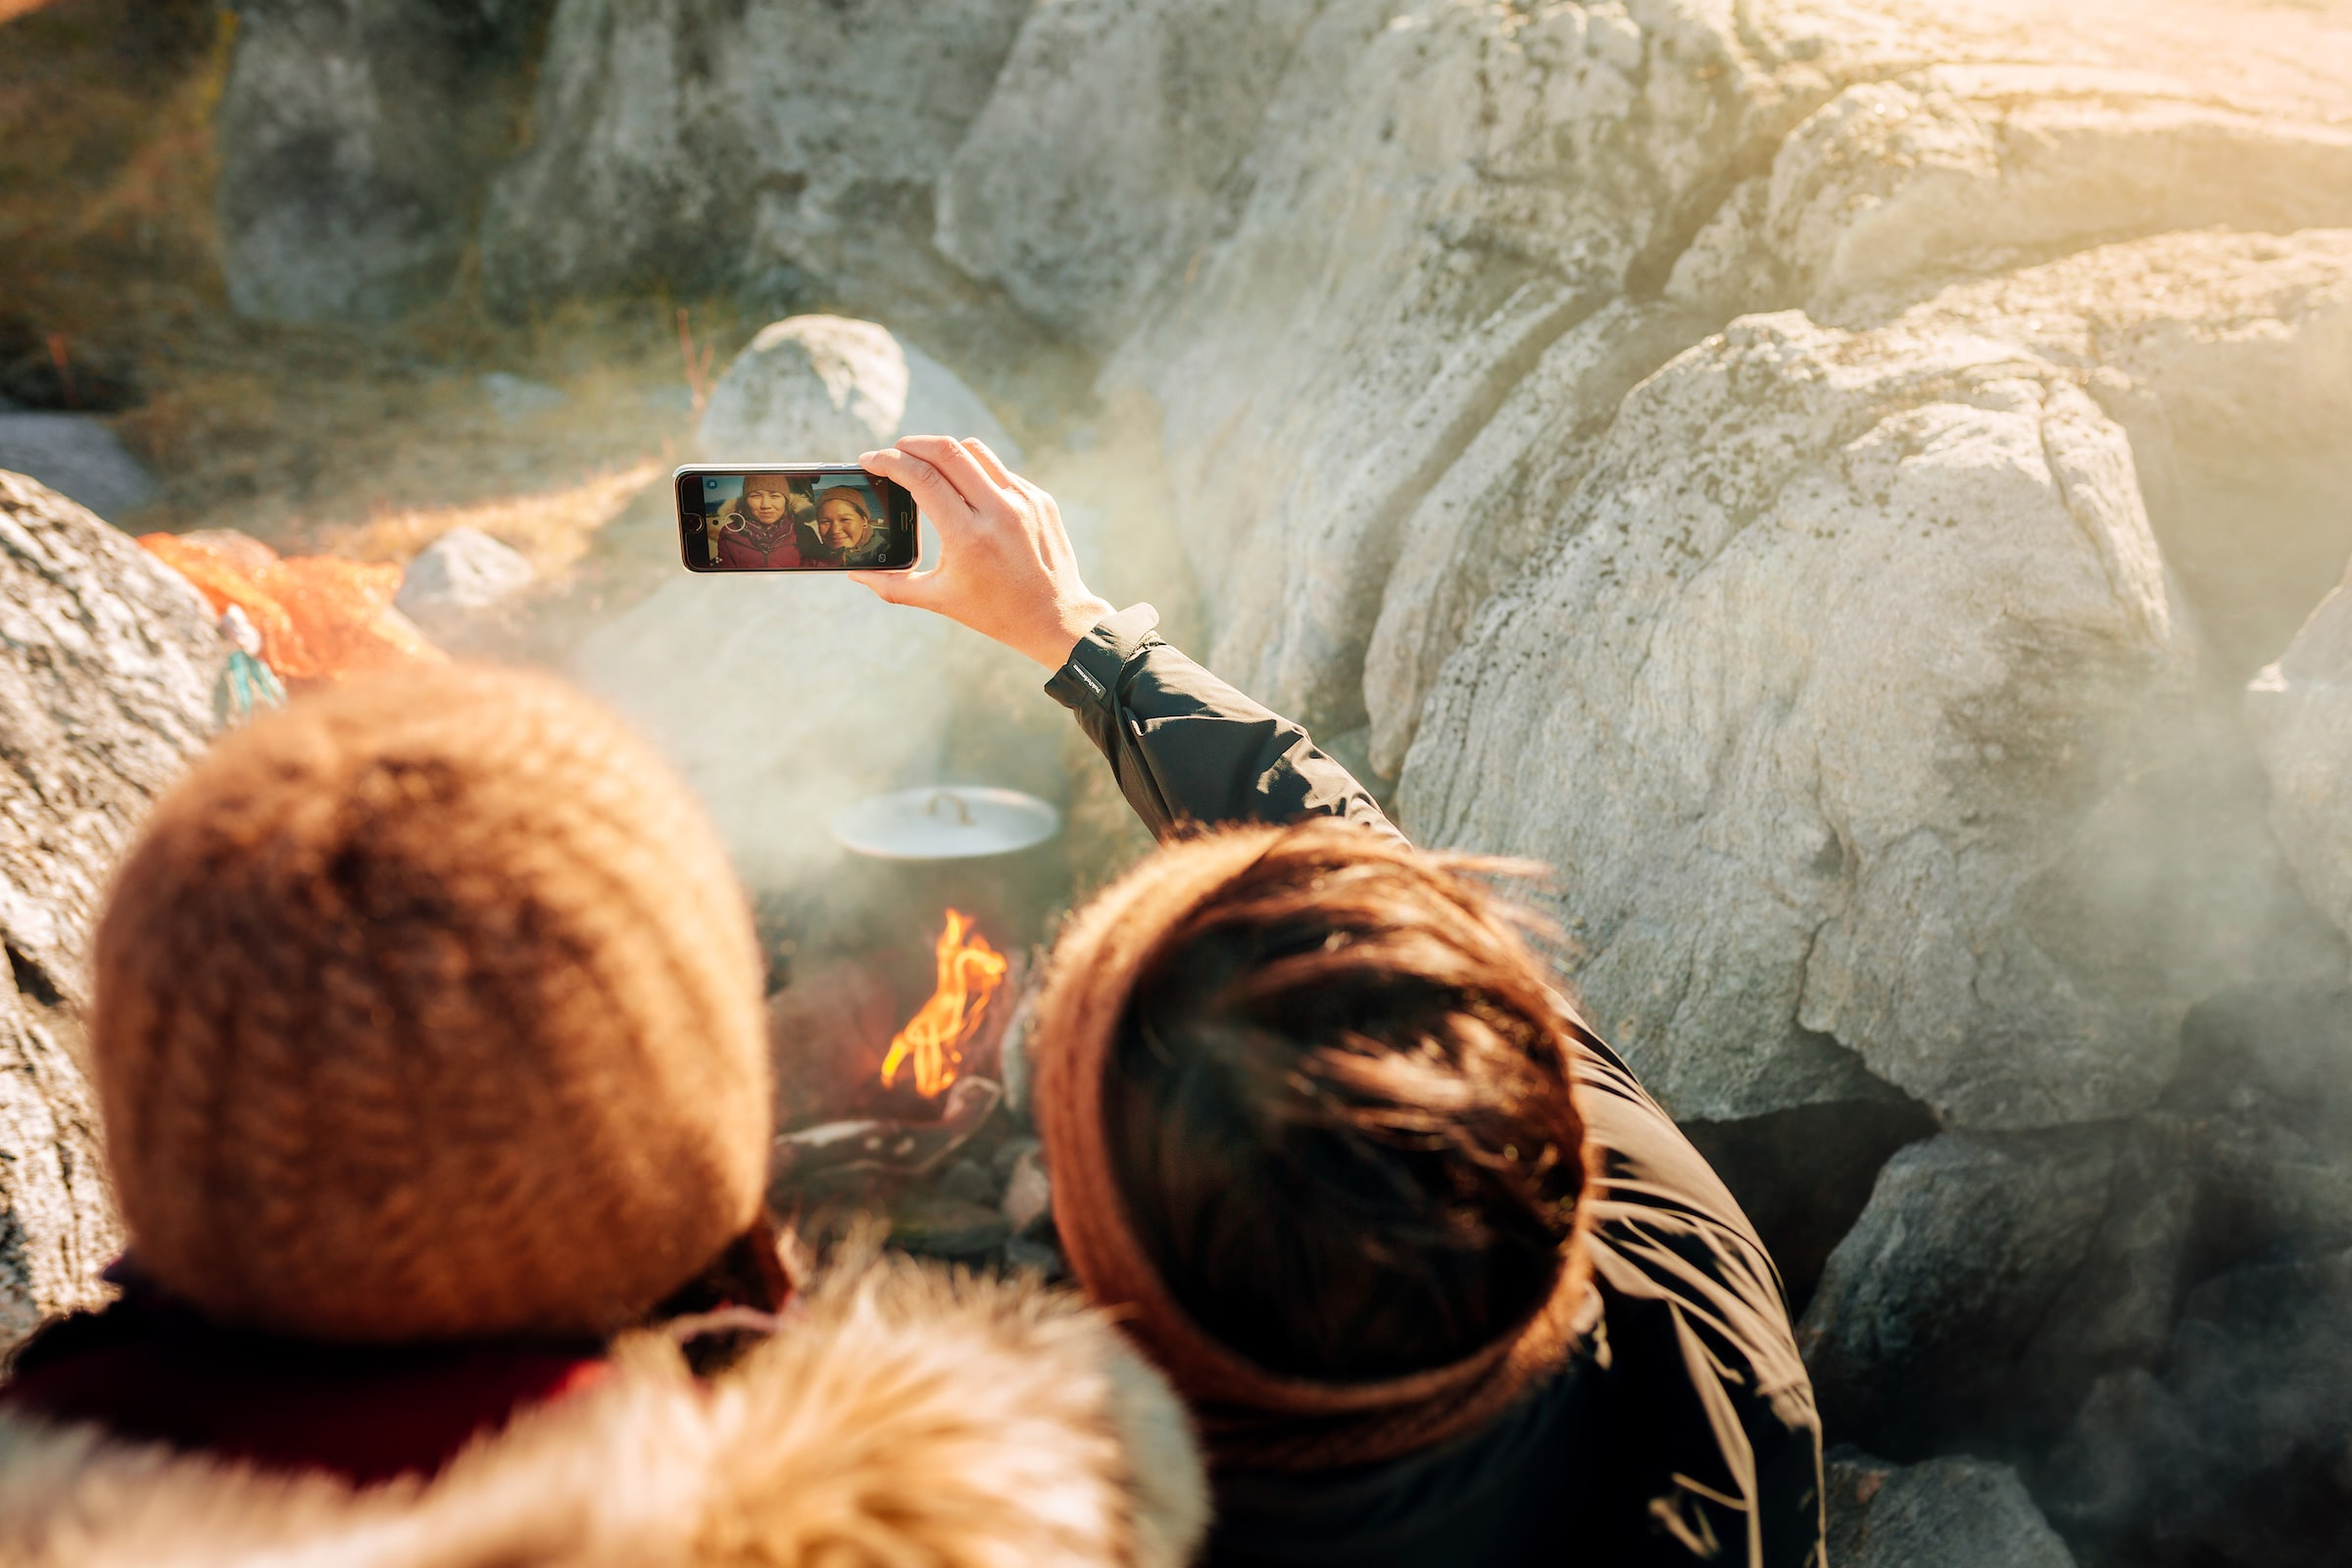 Two women taking a selfie by the fire on the beach in Nuuk in Greenland